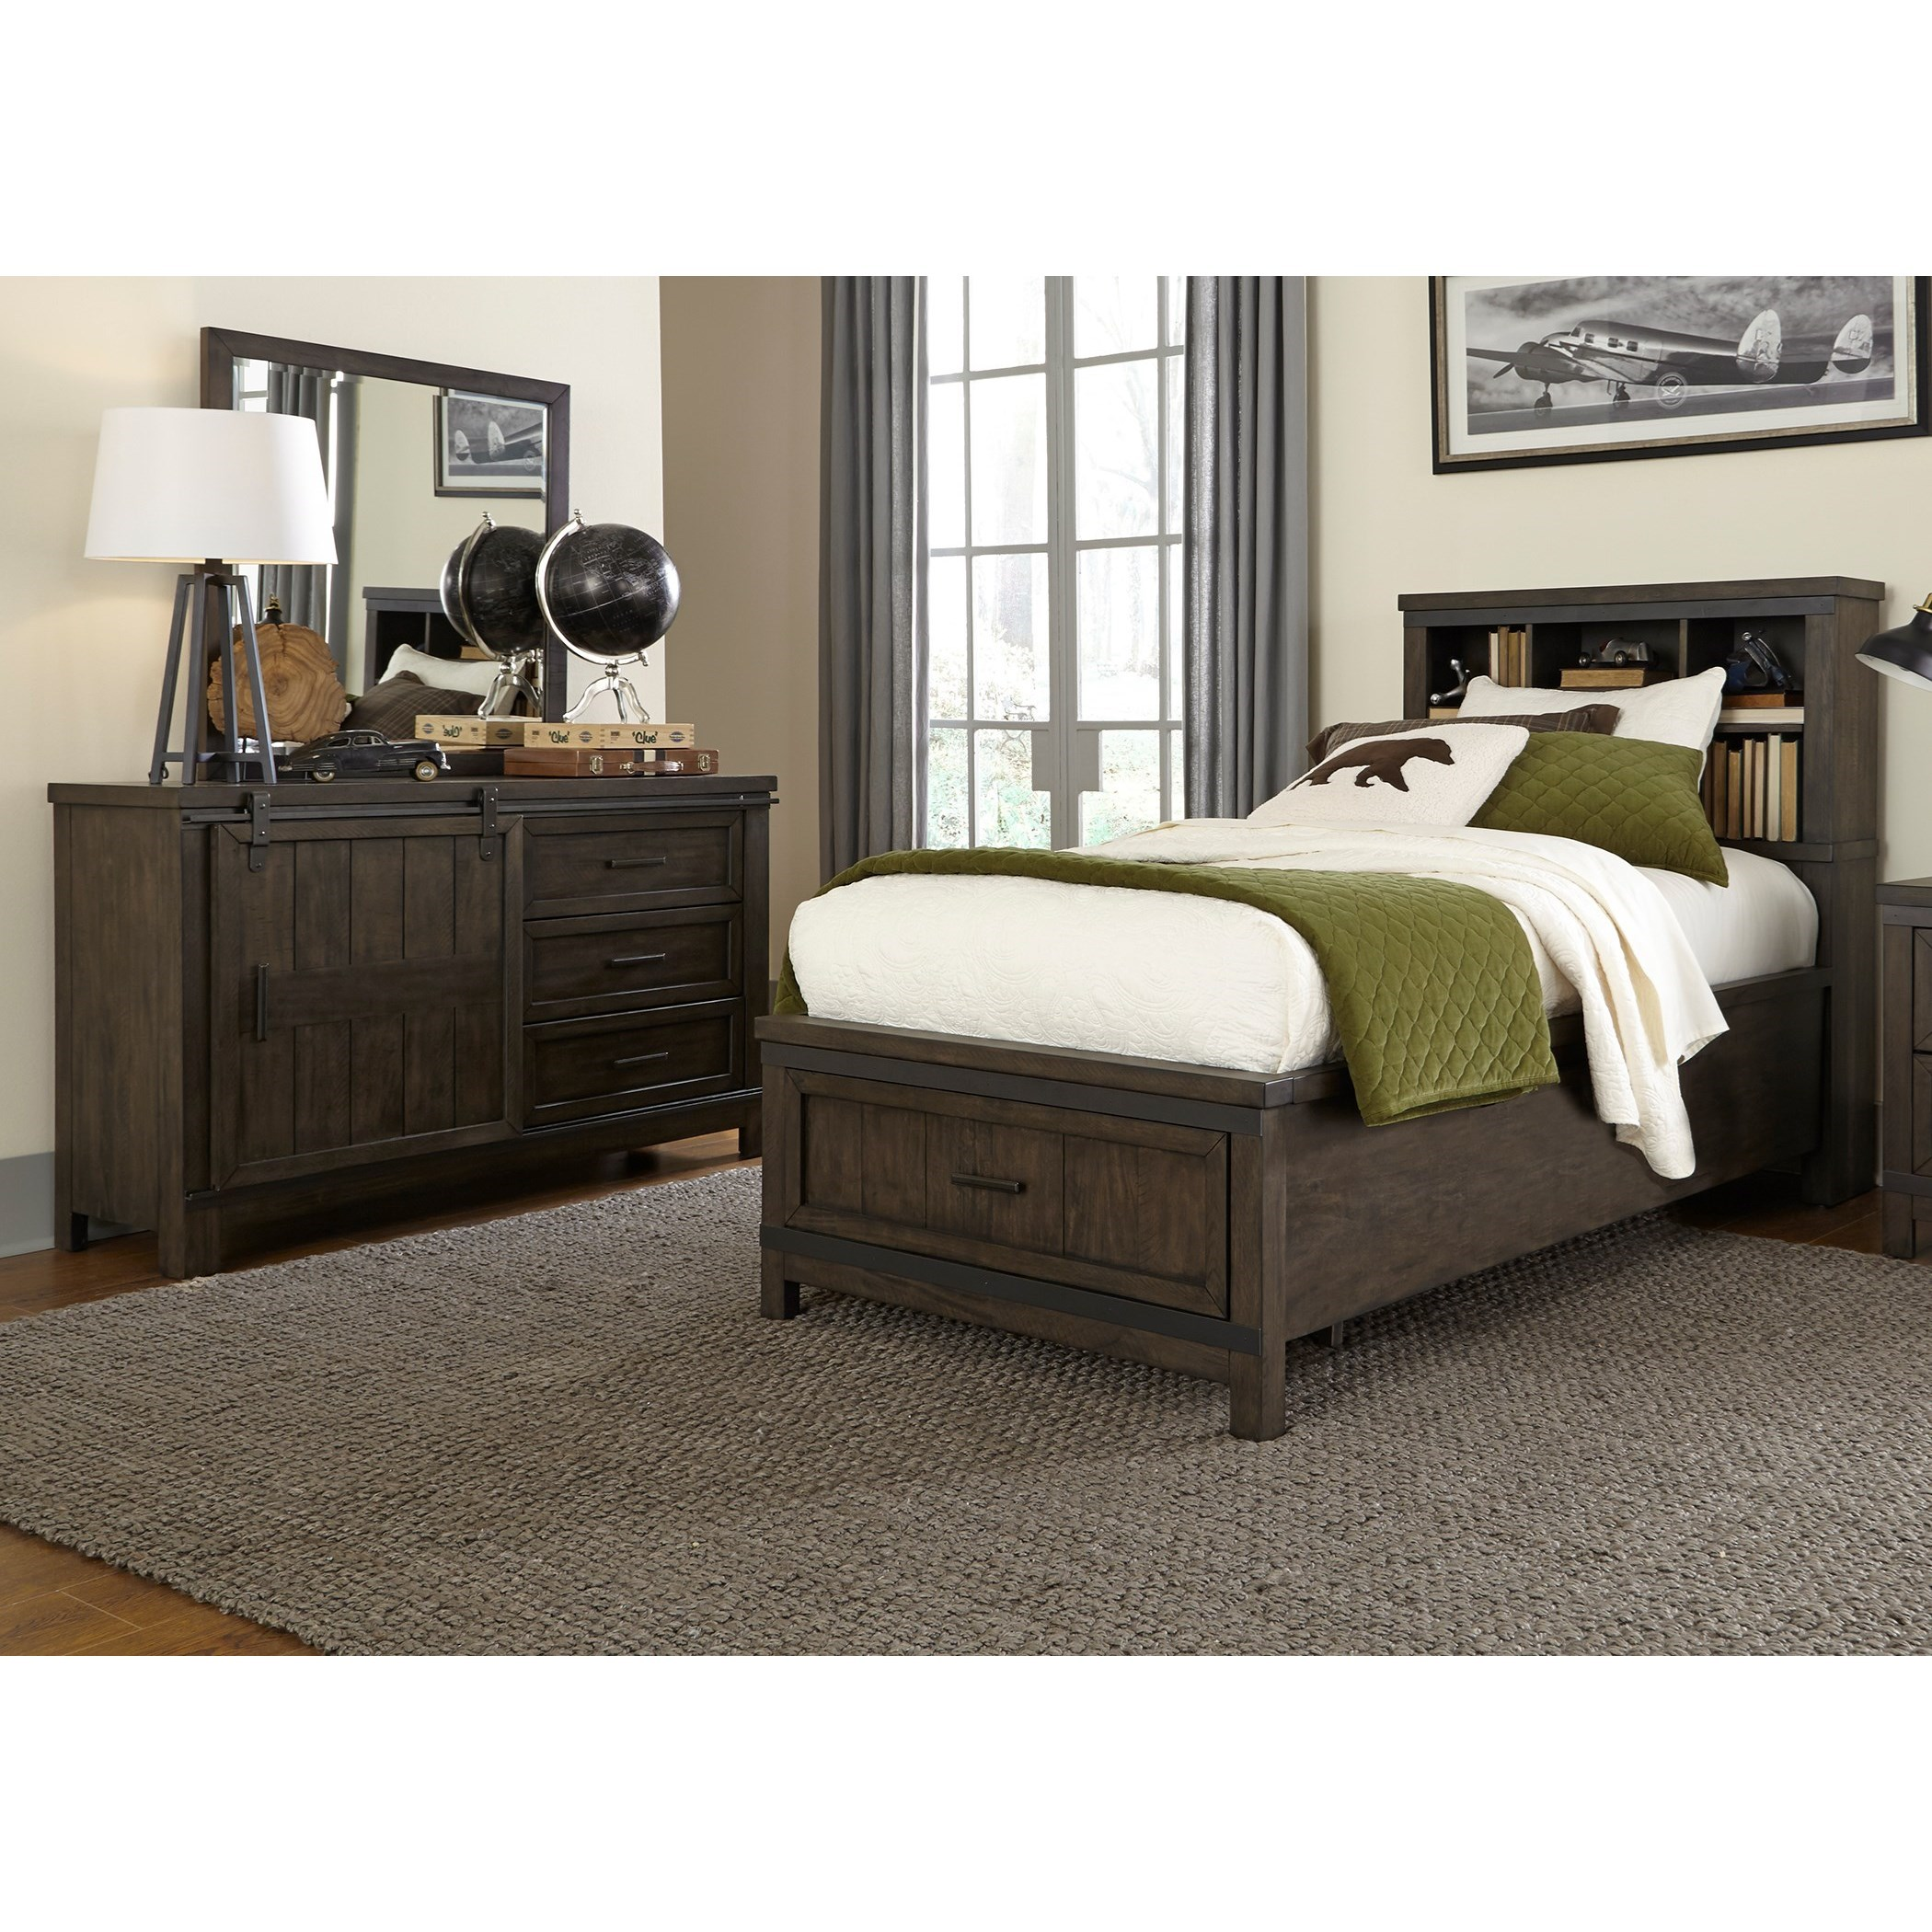 Thornwood Hills Twin Bedroom Group by Libby at Walker's Furniture